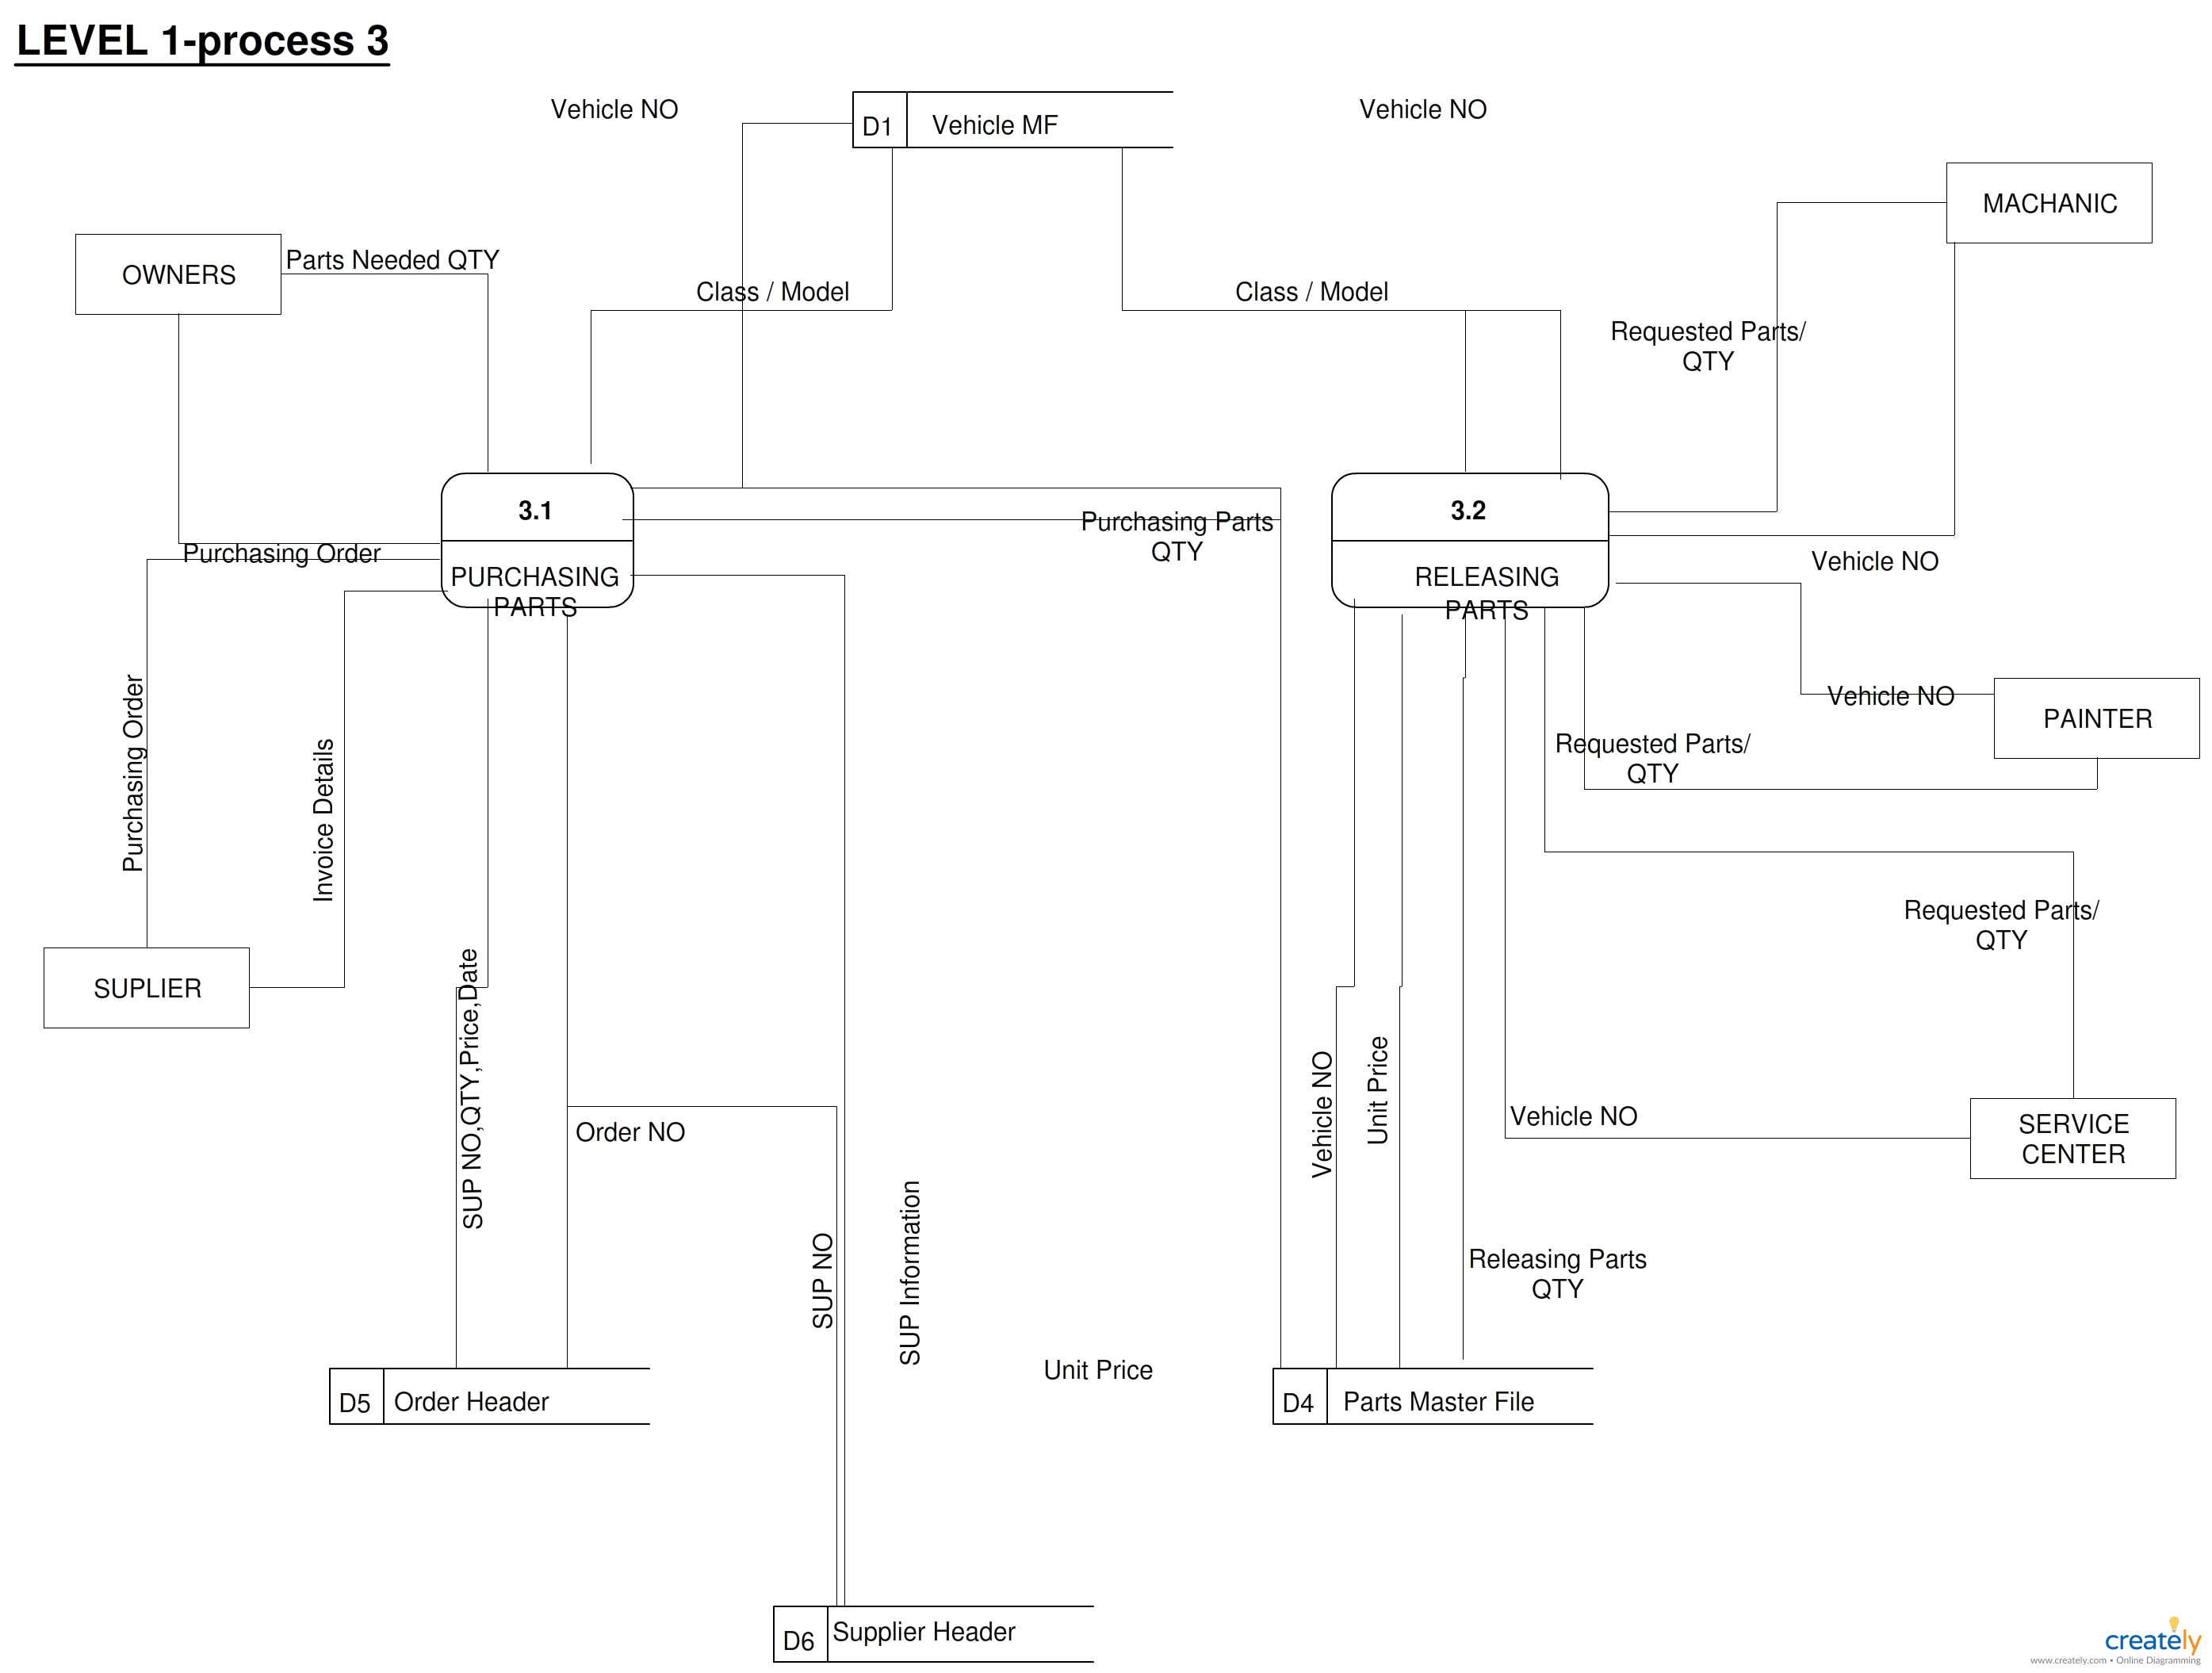 How To Use Data Flow Diagram 2001 Gmc Sierra 1500 Radio Wiring Dfd For Vehicle Service Center Or Carwash Click On The Image This As A Template And Download